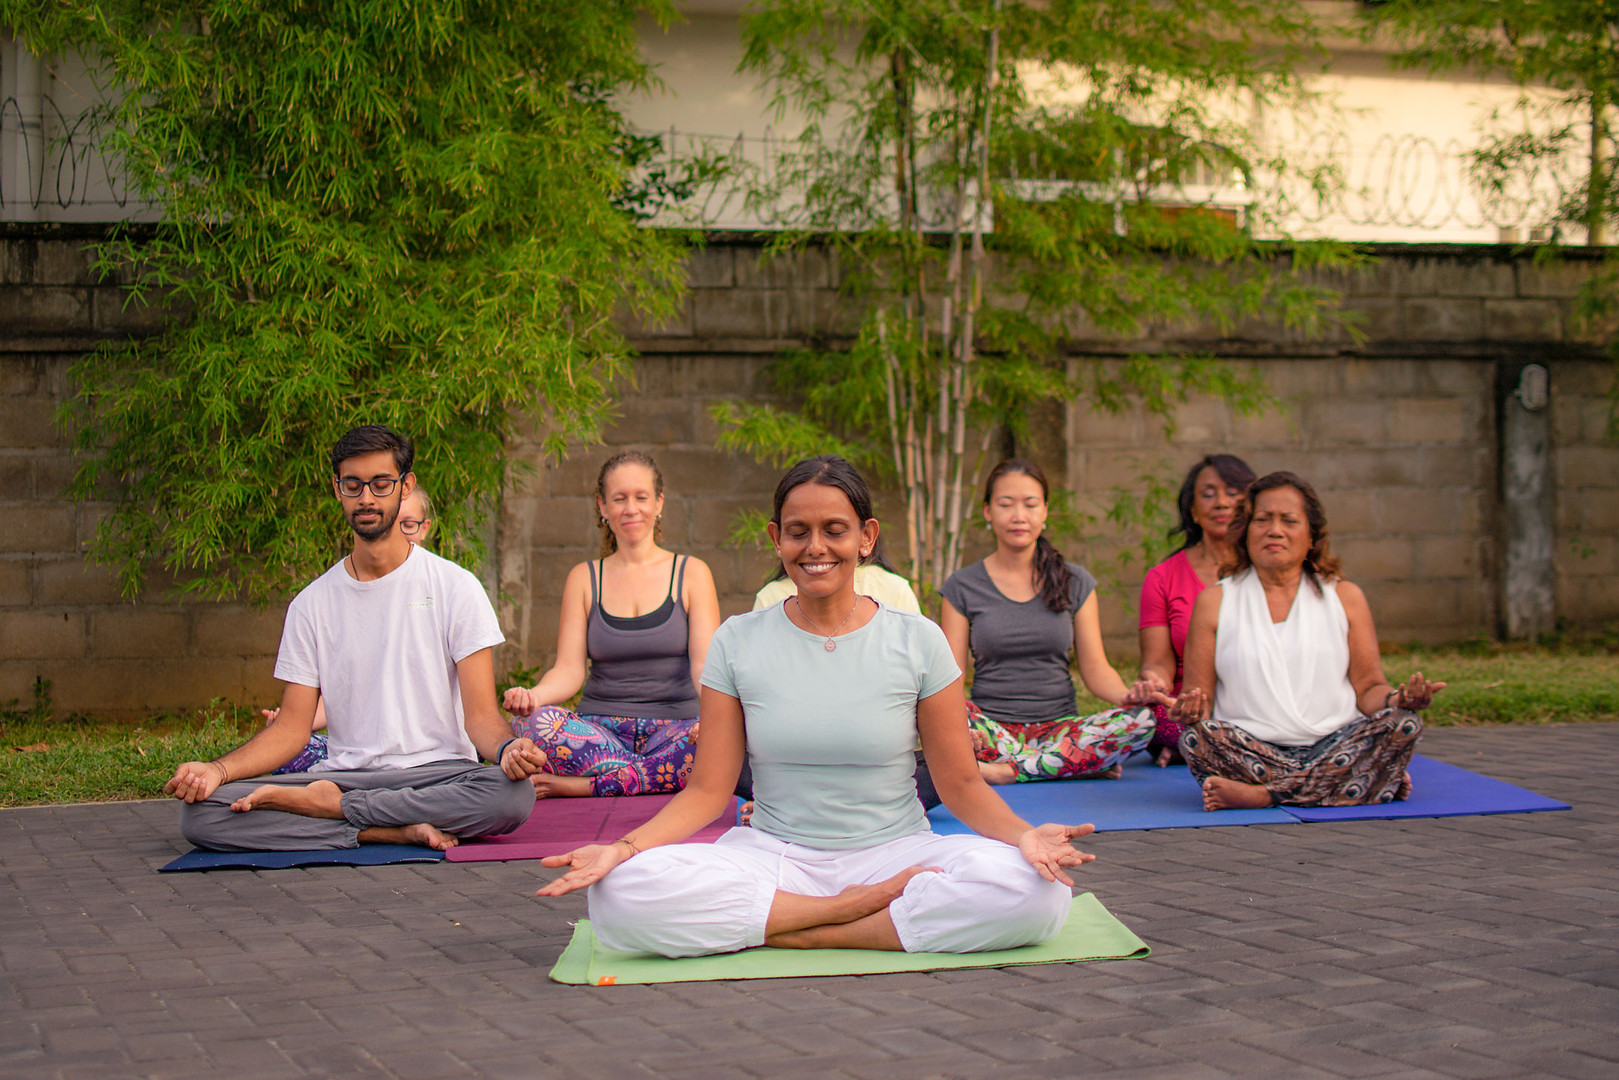 Group Session At Yoga Peetha Happiness Centre